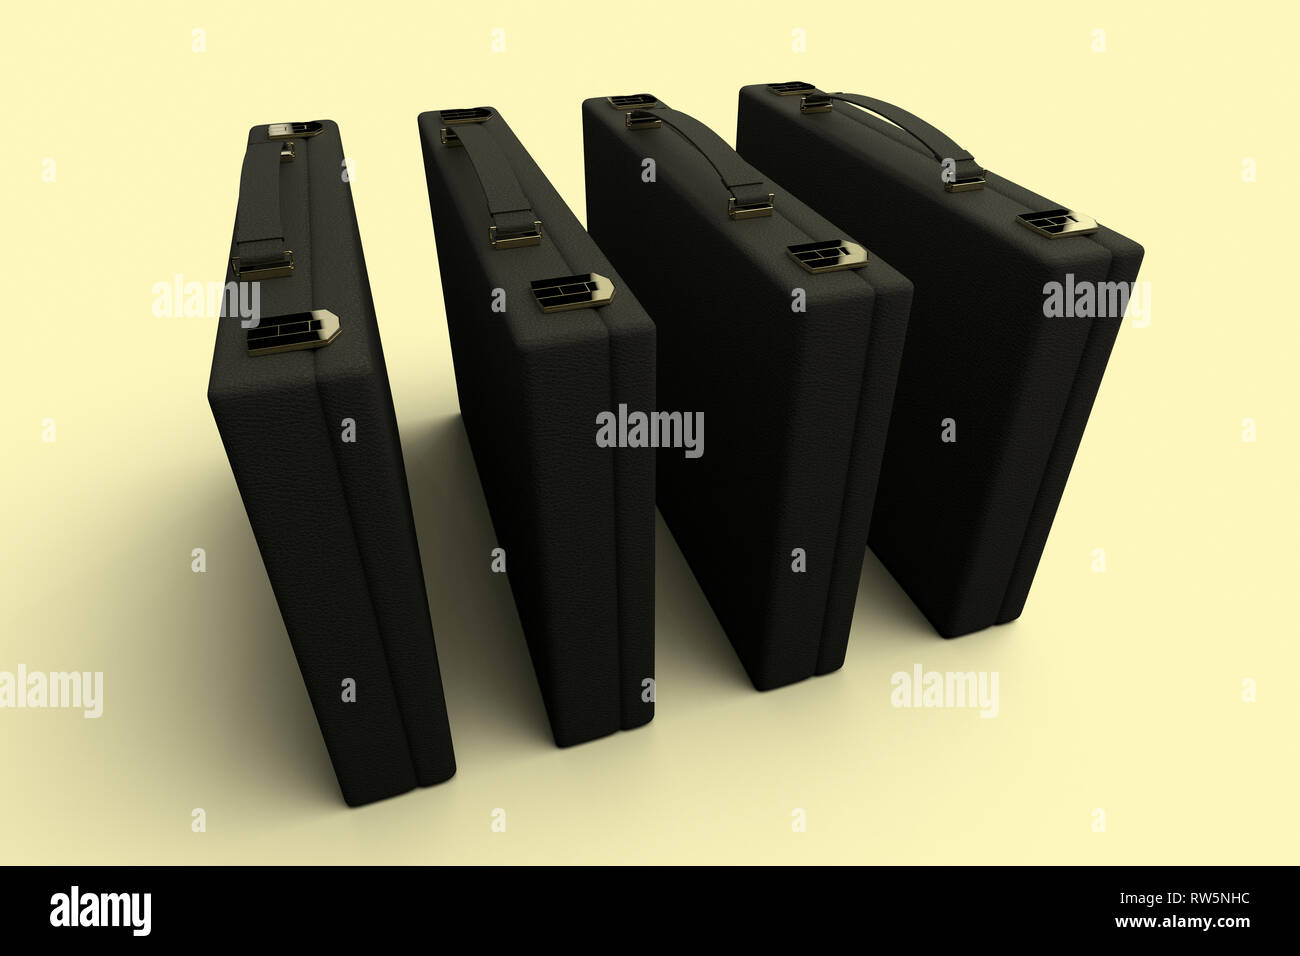 3D rendering of a group of 4 identical briefcases - Stock Image